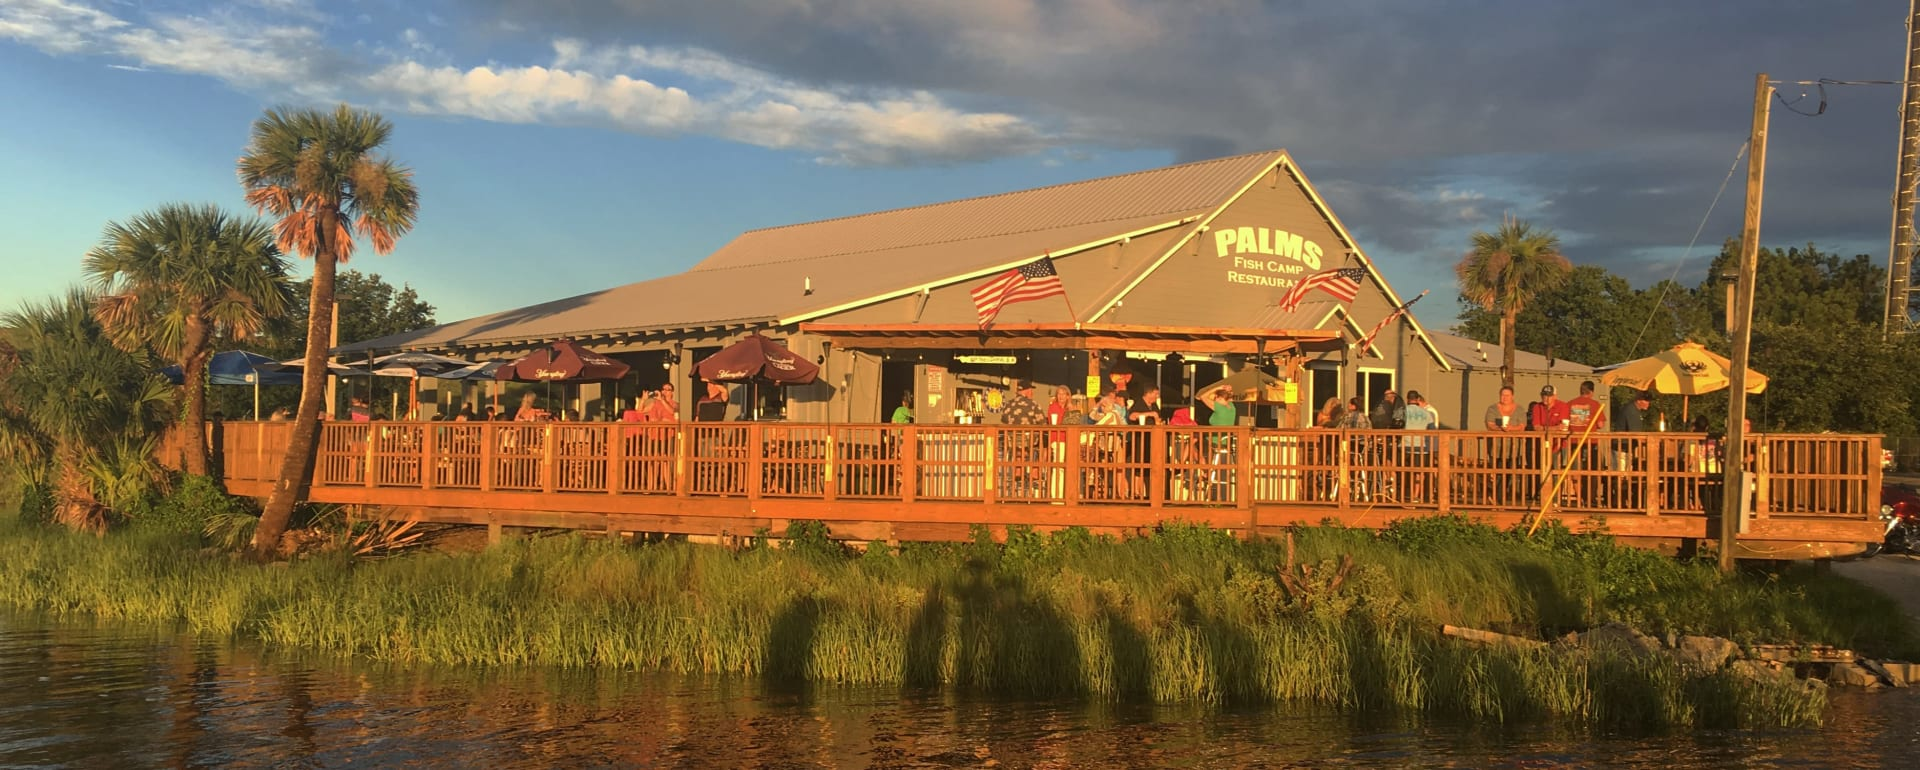 Palms Fish Camp Restaurant